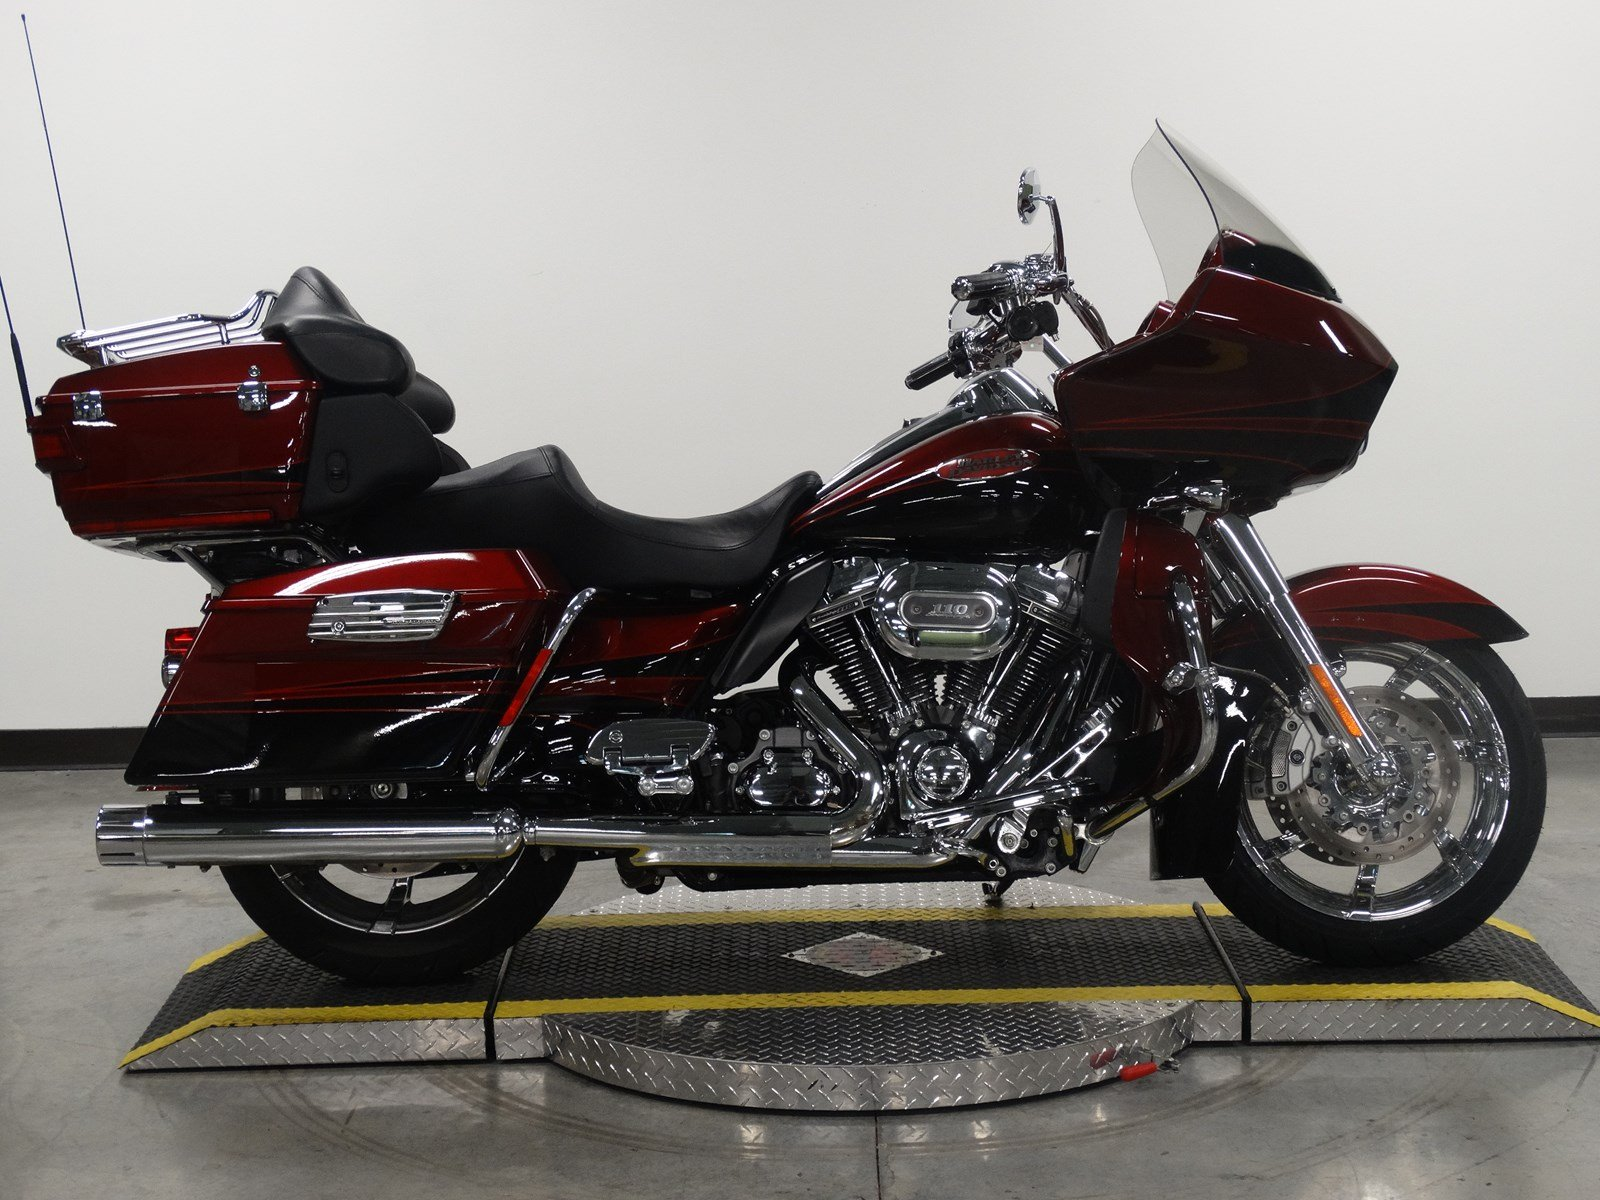 Pre-Owned 2011 Harley-Davidson Road Glide Ultra CVO FLTRUSE CVO/Touring